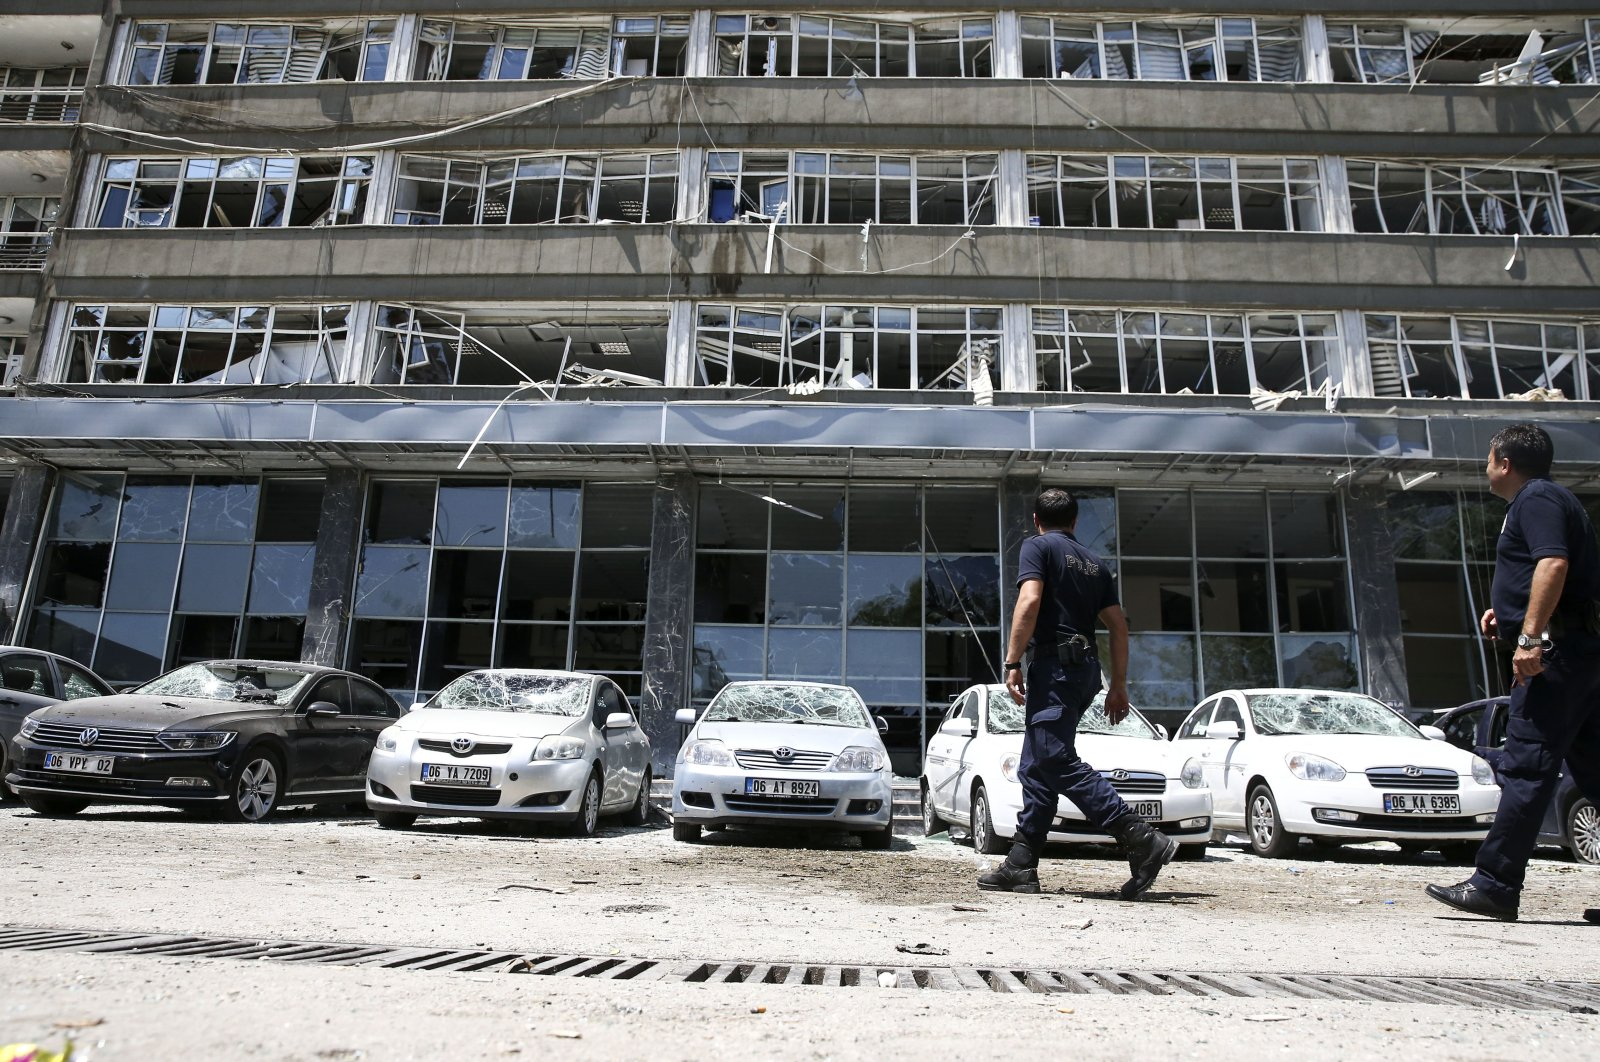 This undated photo shows a building inside the compound that houses the Ankara branch of the Turkish National Police and cars outside damaged in attacks by putschists. (AA Photo)